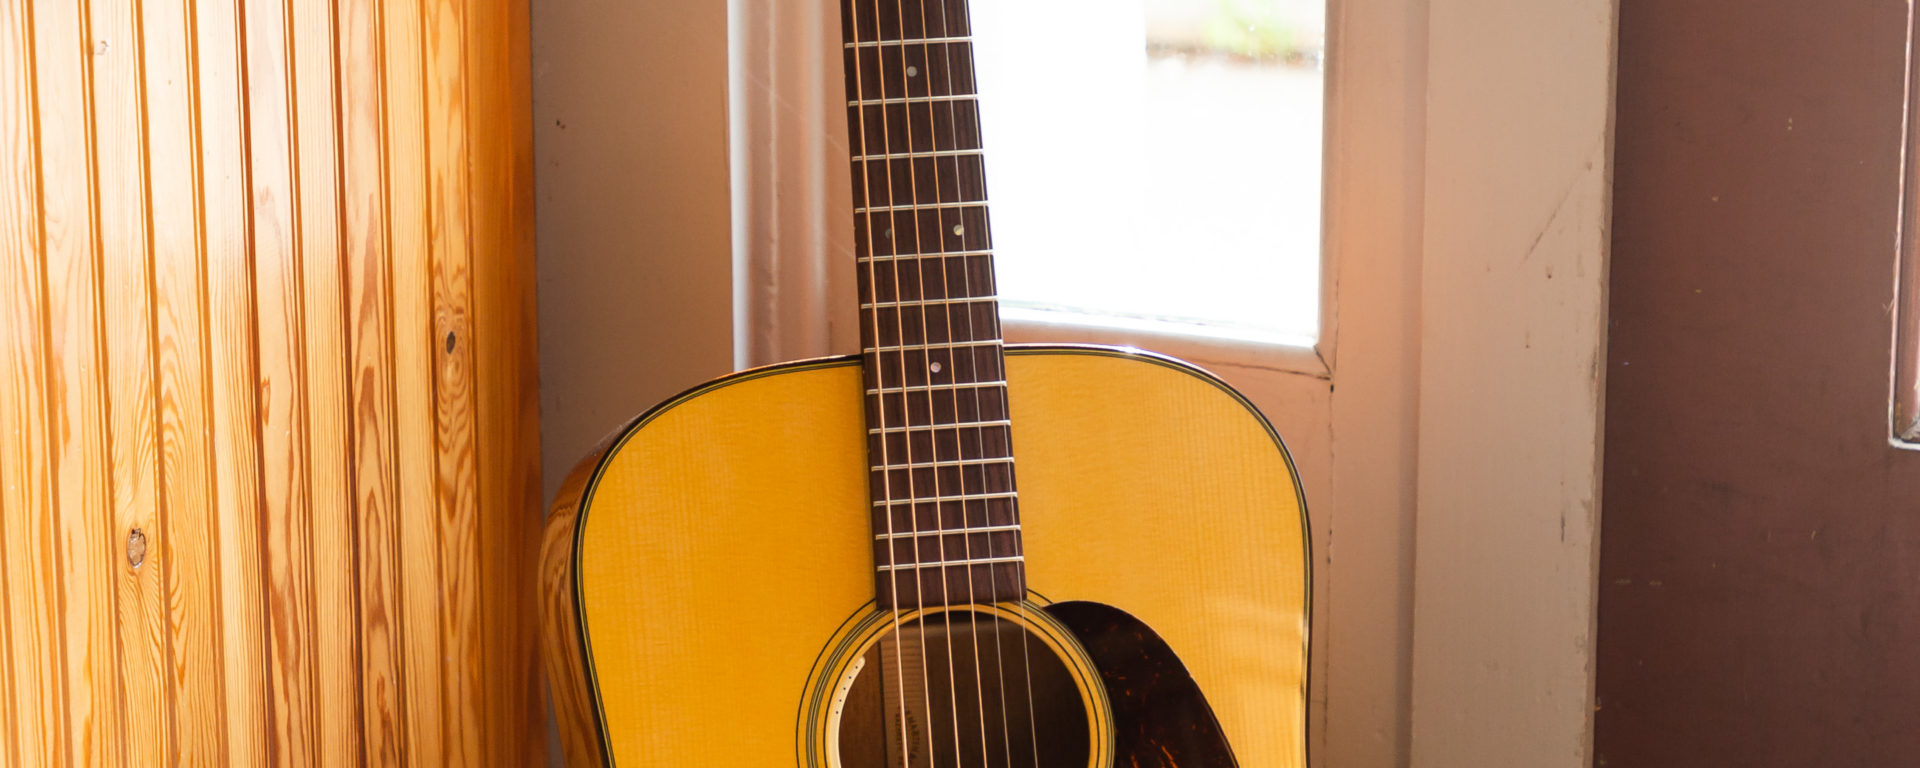 Martin Acoustic Guitars - D-18E 2020 - Limited Edition (LR Baggs Electronics